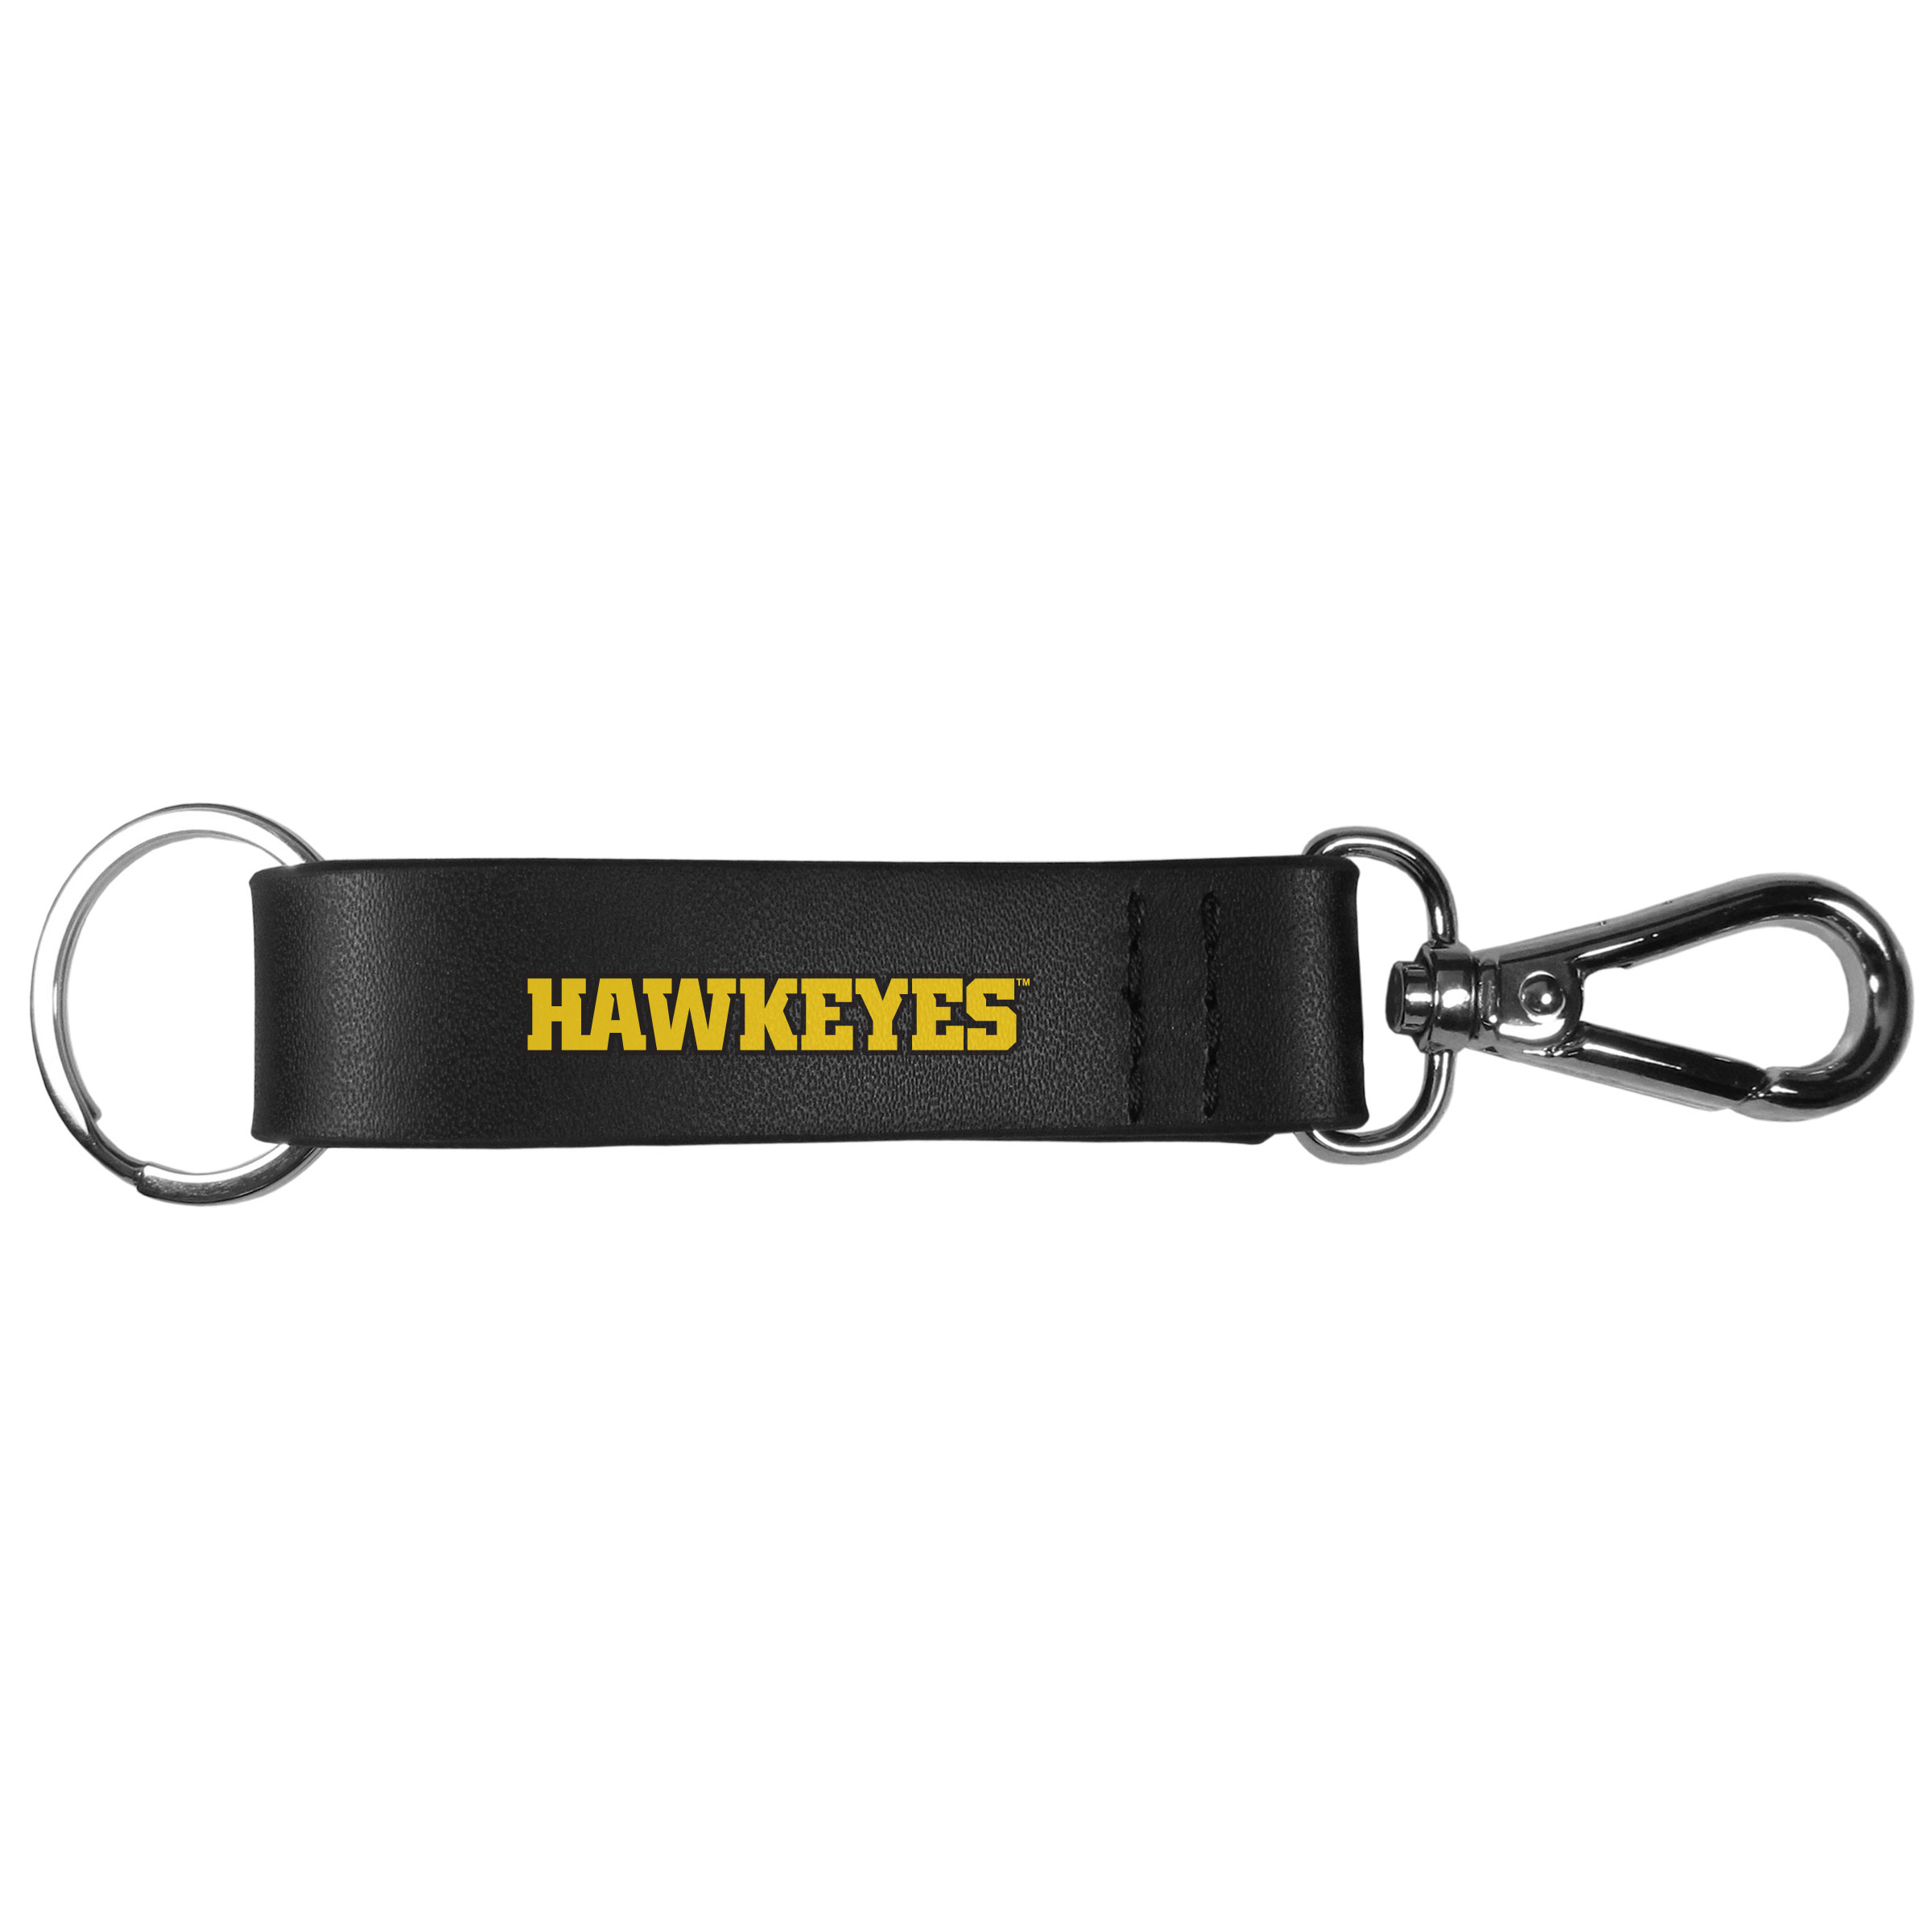 Iowa Hawkeyes Black Strap Key Chain - This stylish key chain features a spring clasp at one end of the chunky black strap and a standard split ring at the other. The leather like textured strap features an expertly printed Iowa Hawkeyes wordmark. The key chain can be easily clipped to purses, backpacks or belt loops to make it easier to find your keys.